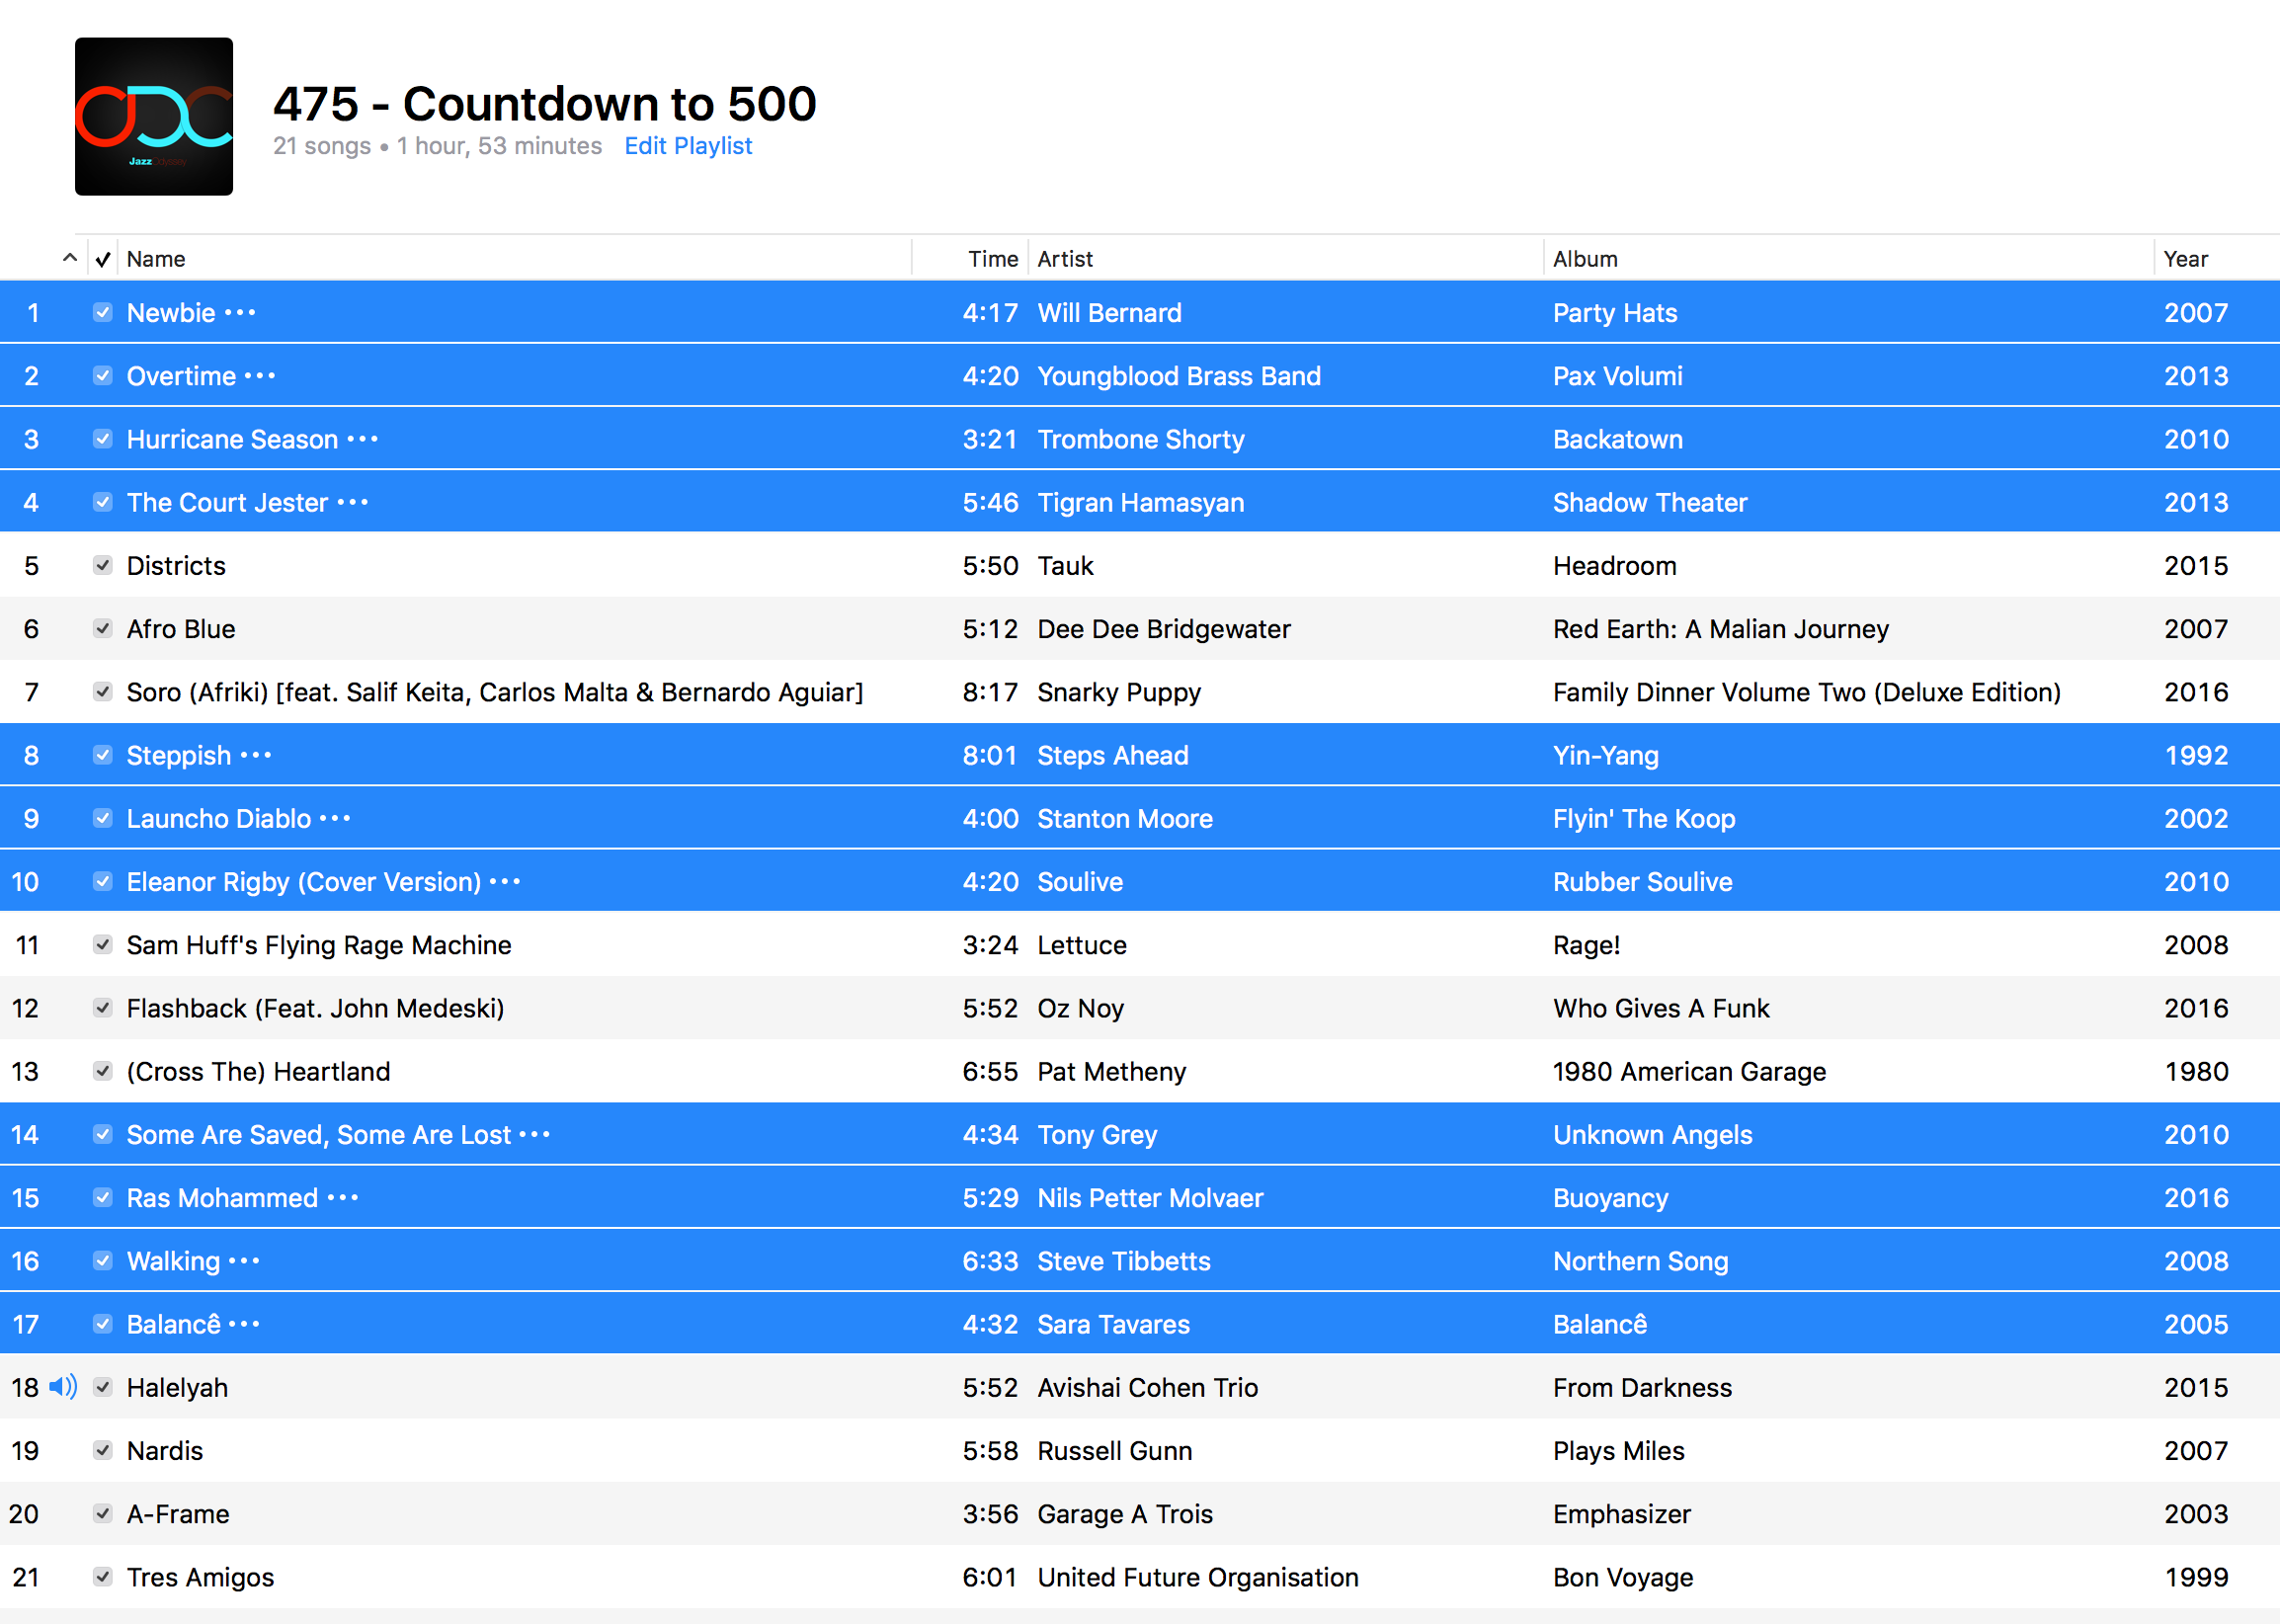 Jazz ODC #475 - Countdown To 500 - Playlist